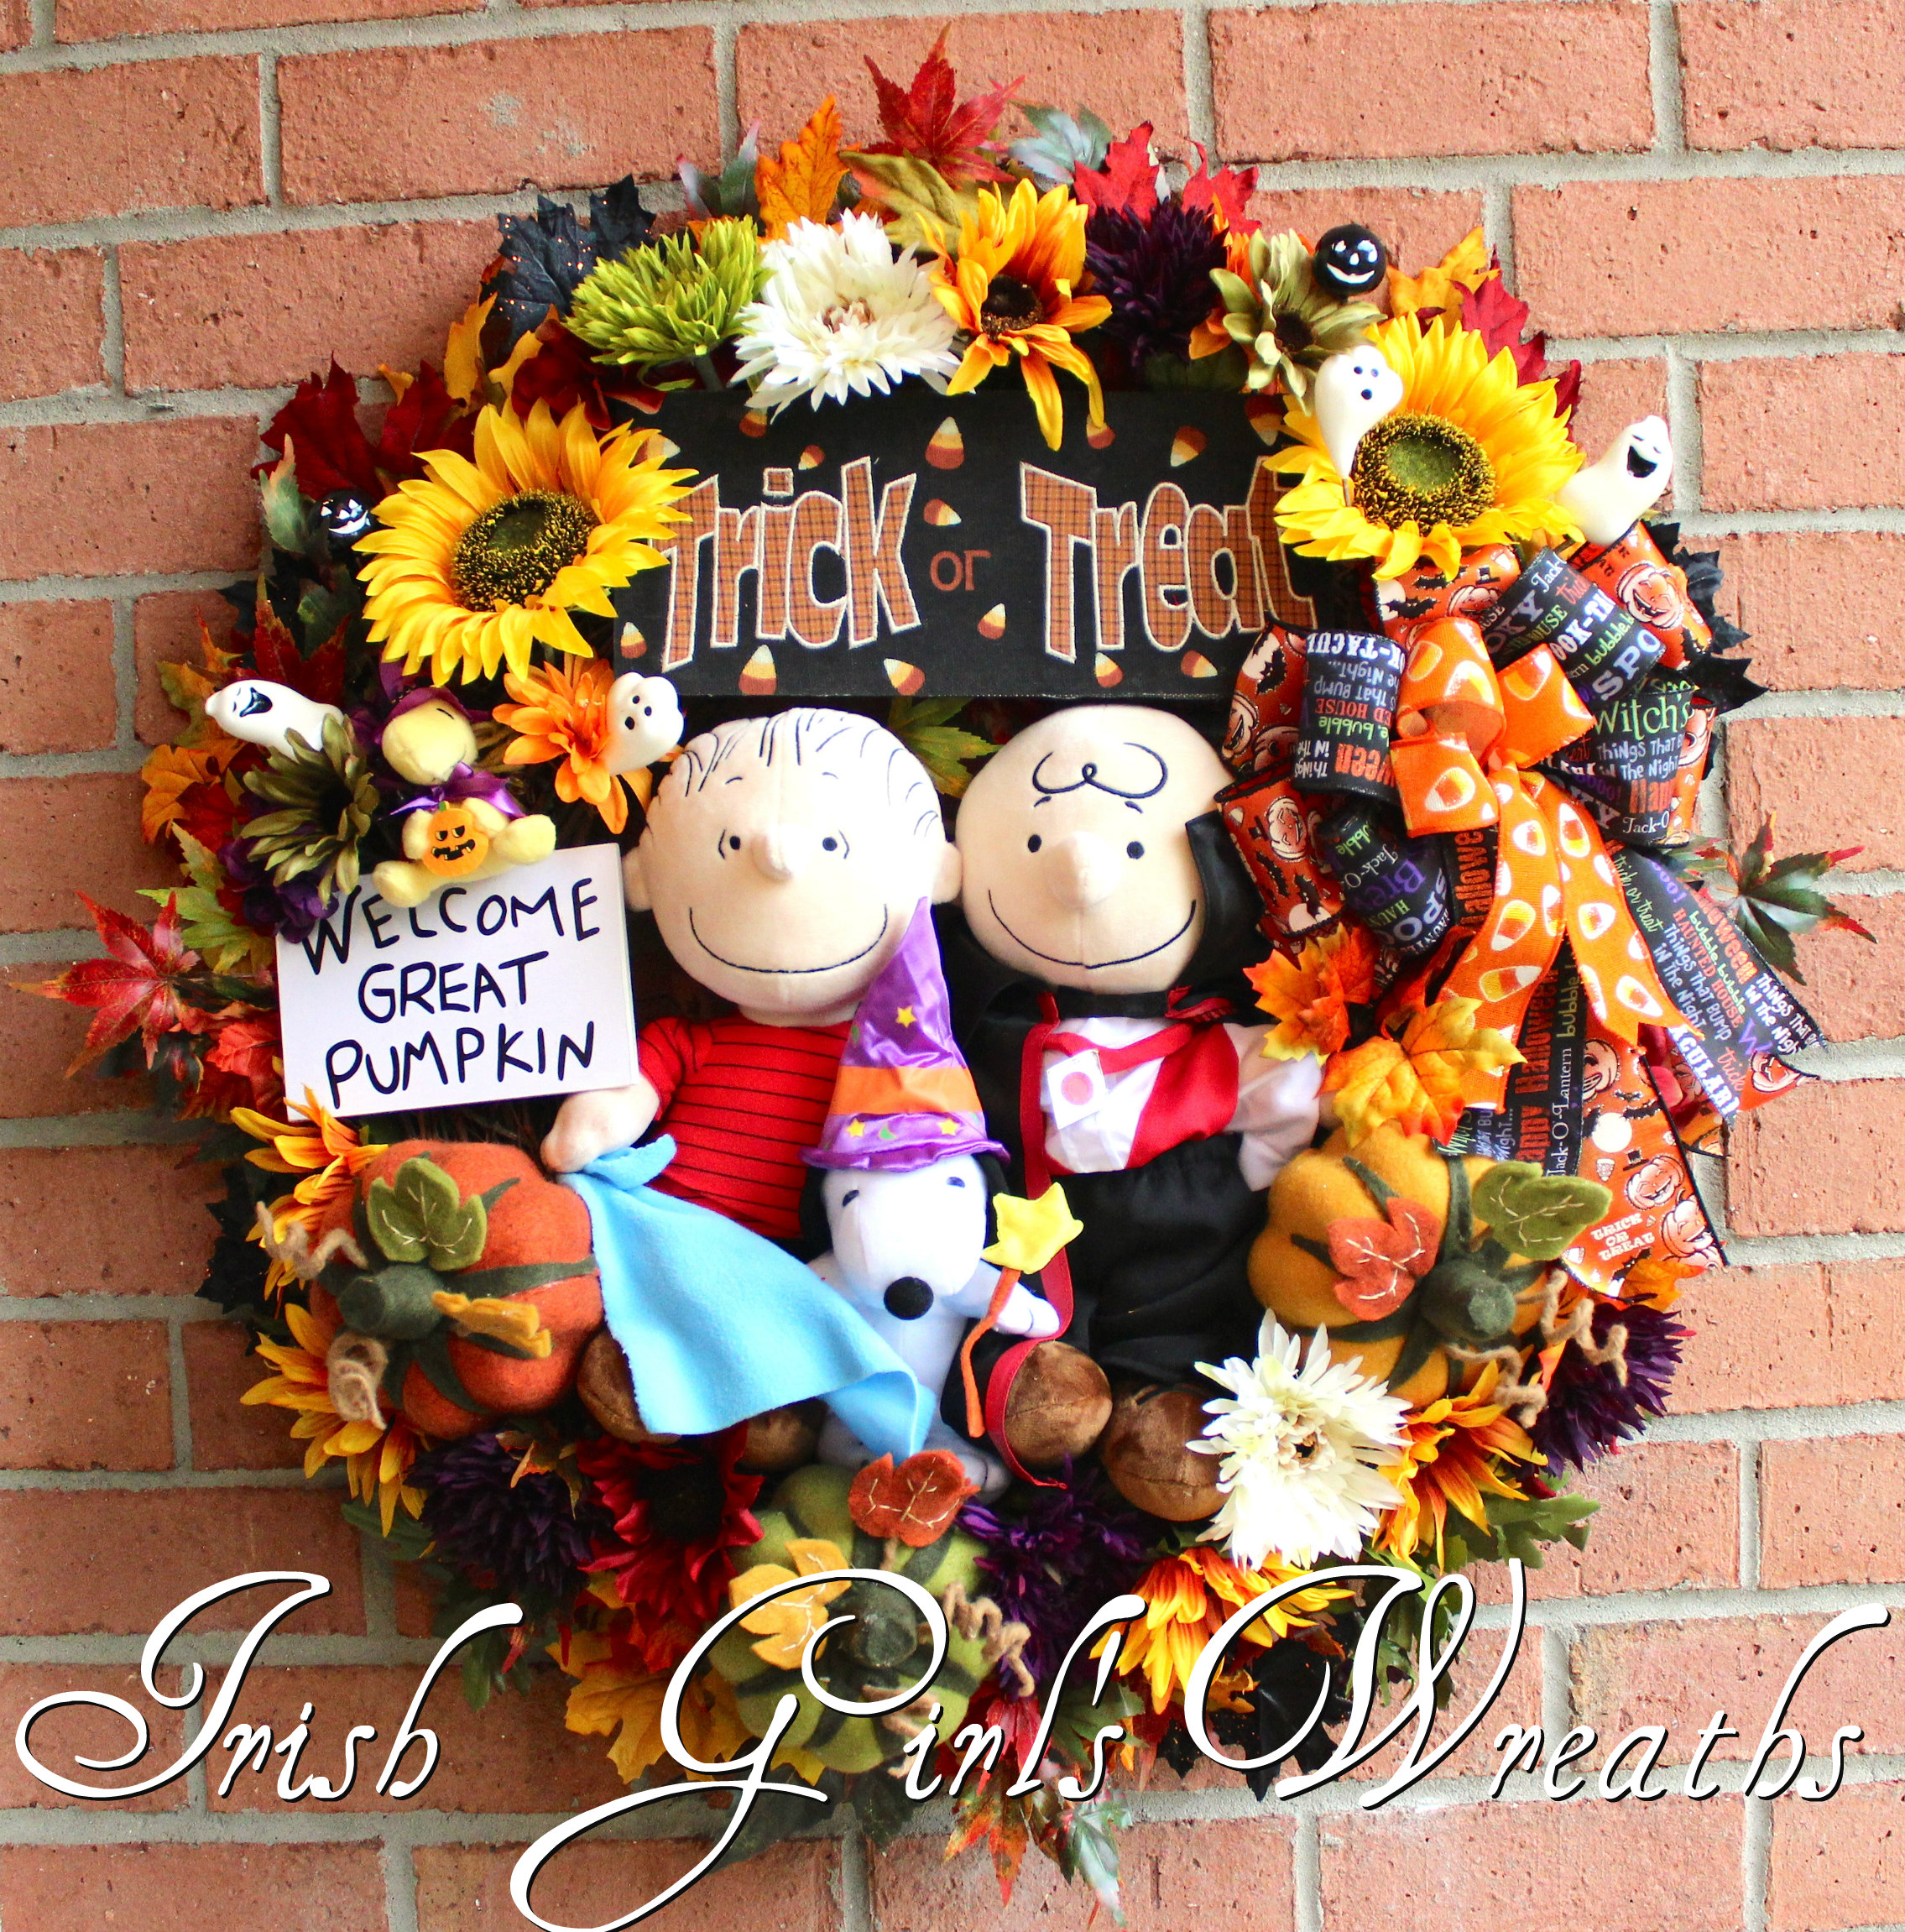 XL Deluxe Great Pumpkin Wreath, Trick Treat Halloween Wreath, Charlie Brown Vampire, Linus, Snoopy, Woodstock, Peanuts Gang Wreath- Only 1